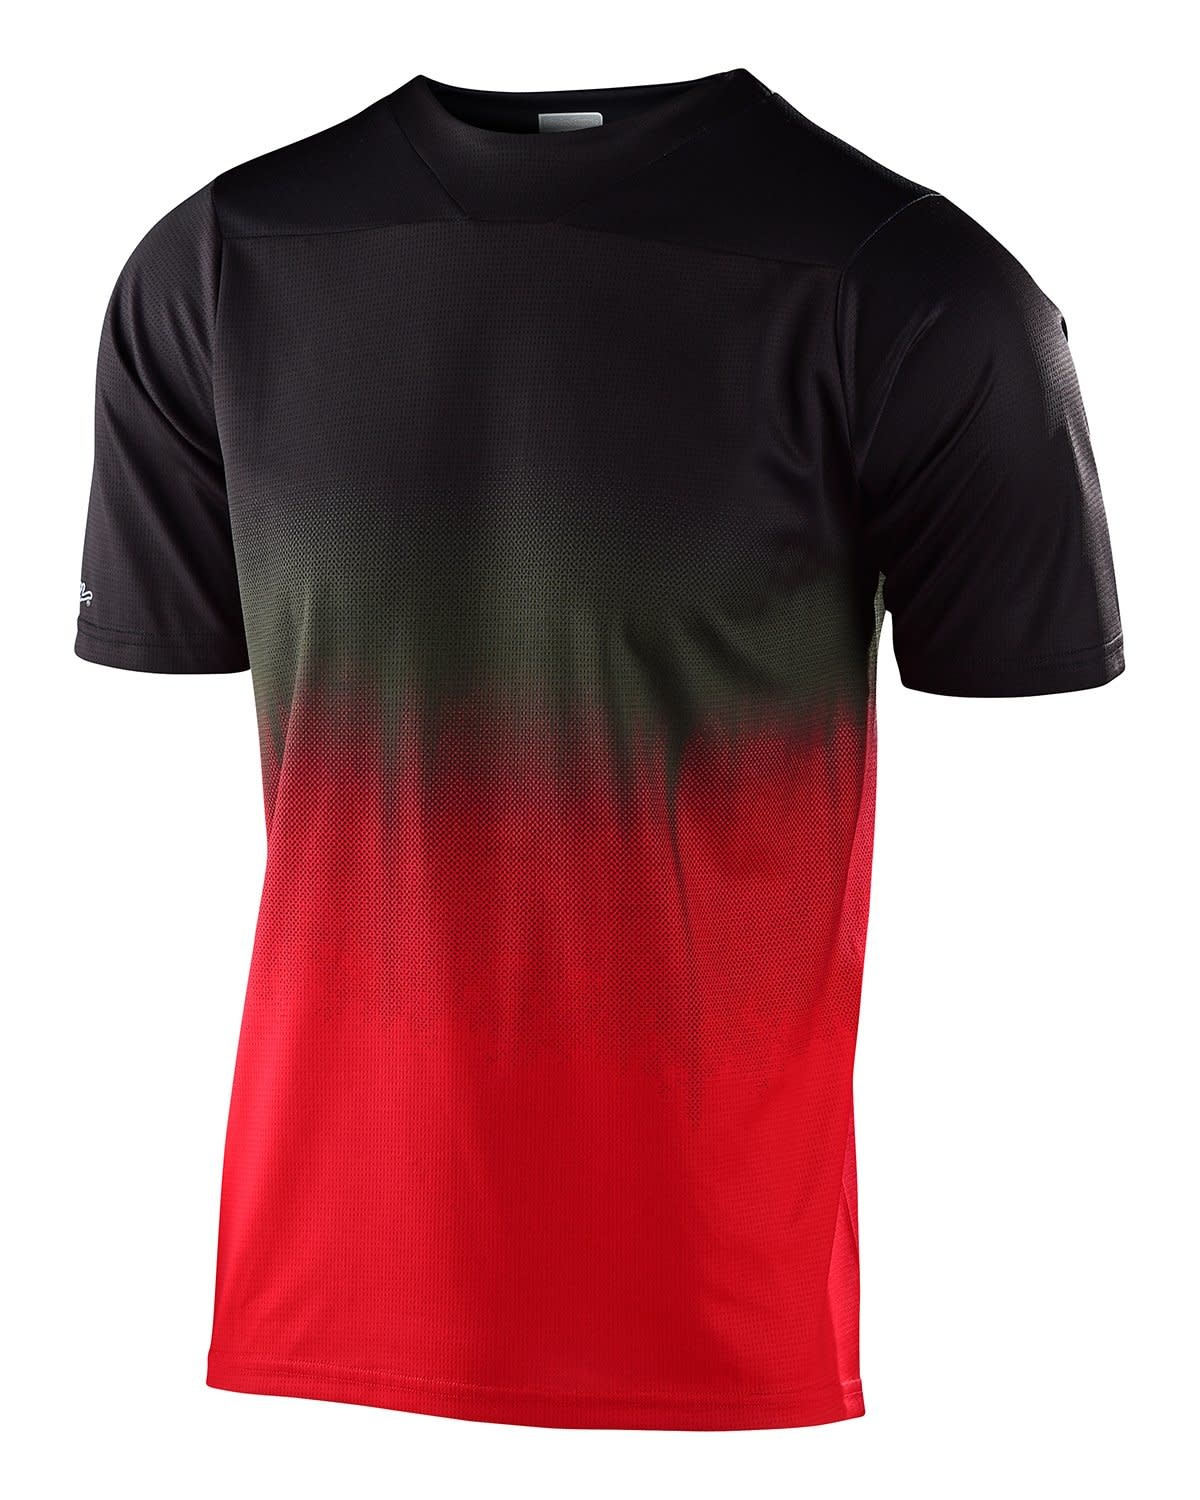 Troy Lee Designs SKYLINE SS JERSEY; STAIN'D BLACK / RED LG